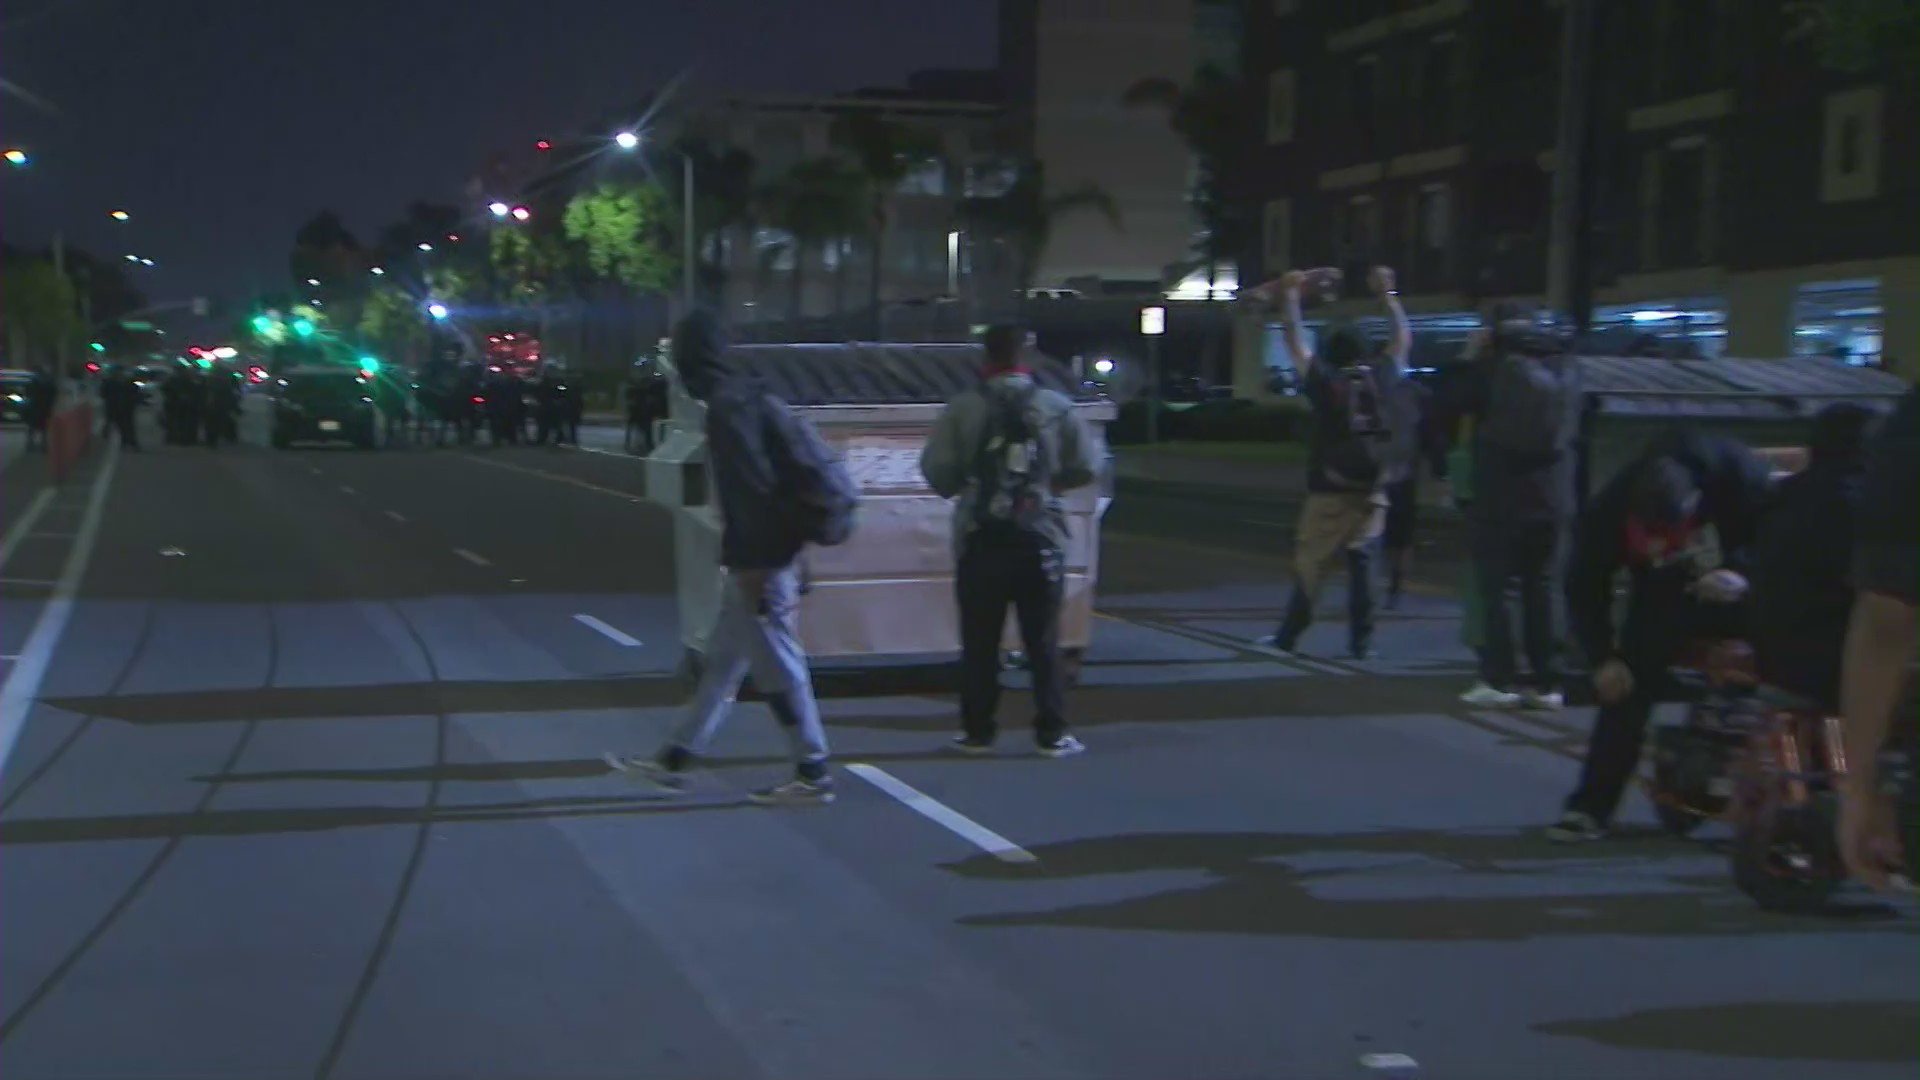 Andres Guardado Video Porno mostly peaceful protest in santa ana ends with standoff